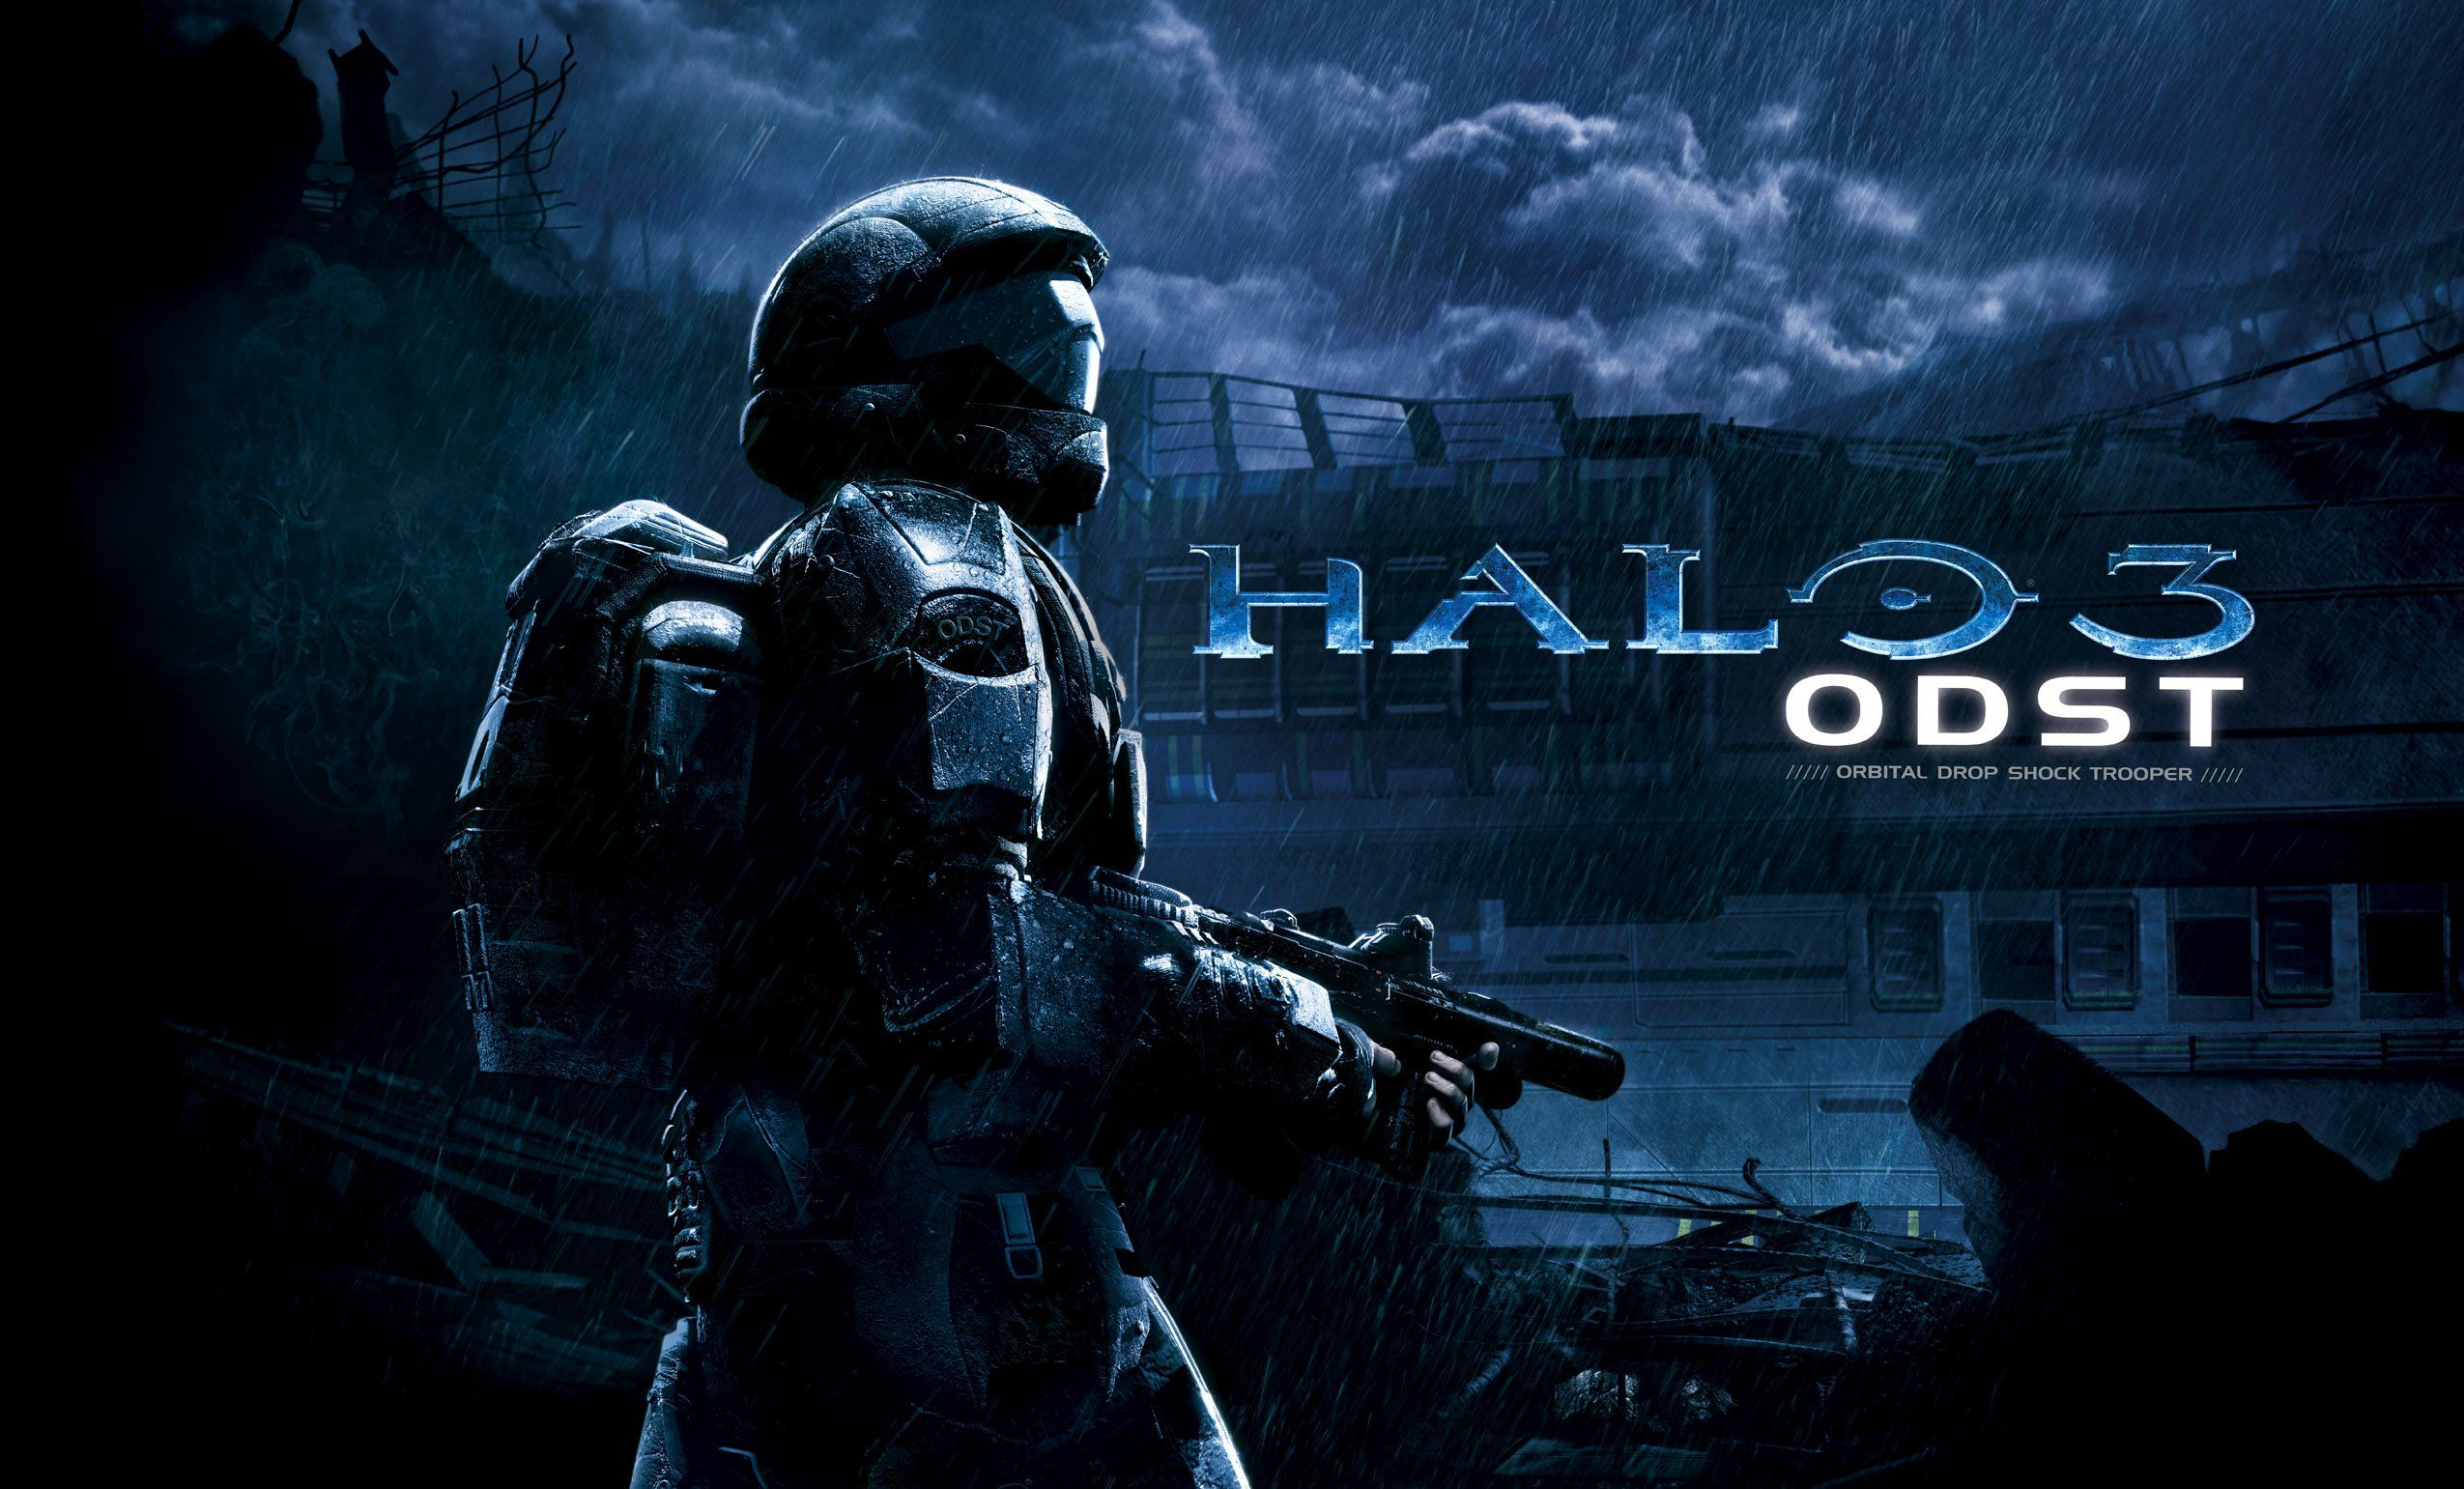 Halo 3 Odst Is 7 Years Old Today Gaming Halo 3 Odst